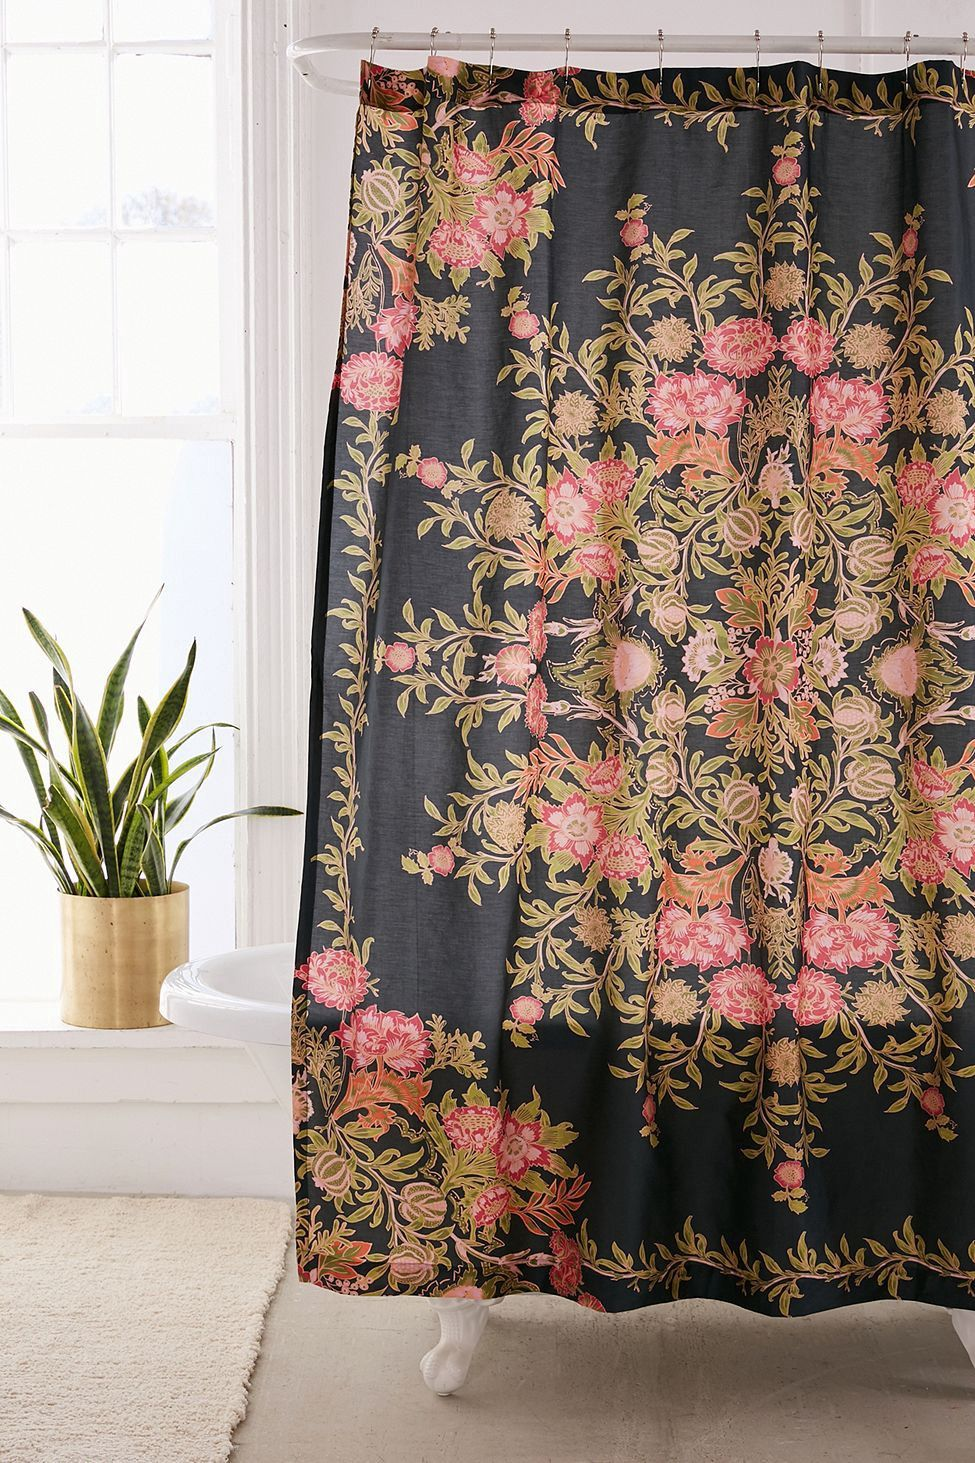 Urban Outfitters Analise Floral Medallion Shower Curtain Black